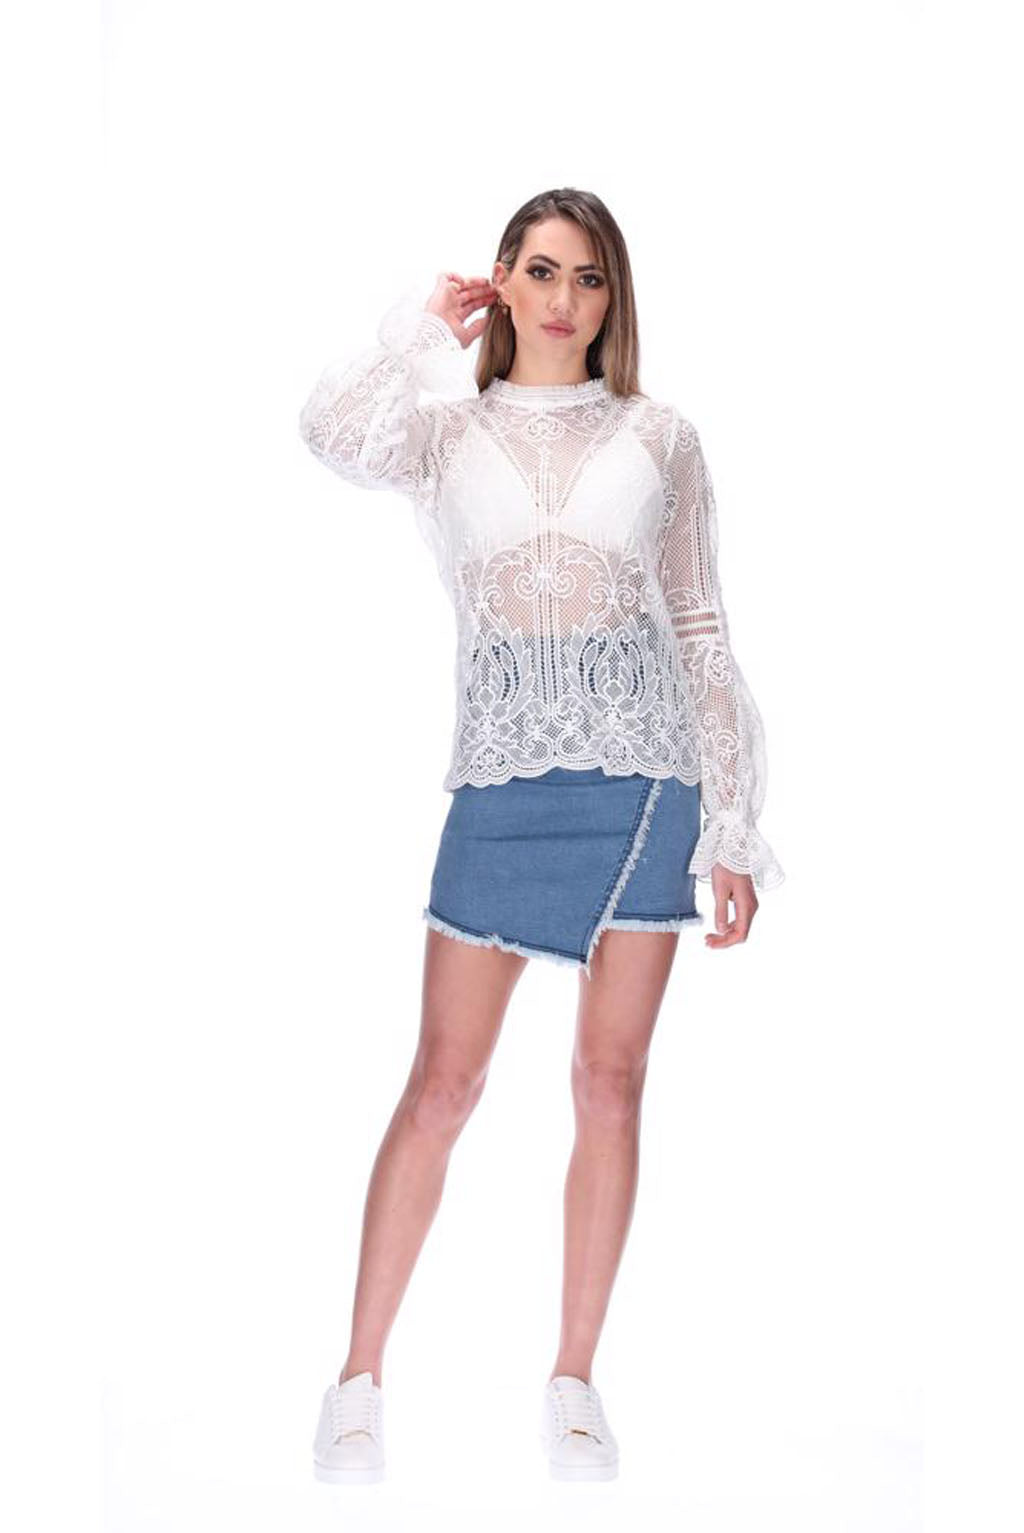 Augustine Amaya Jean Lace Top White